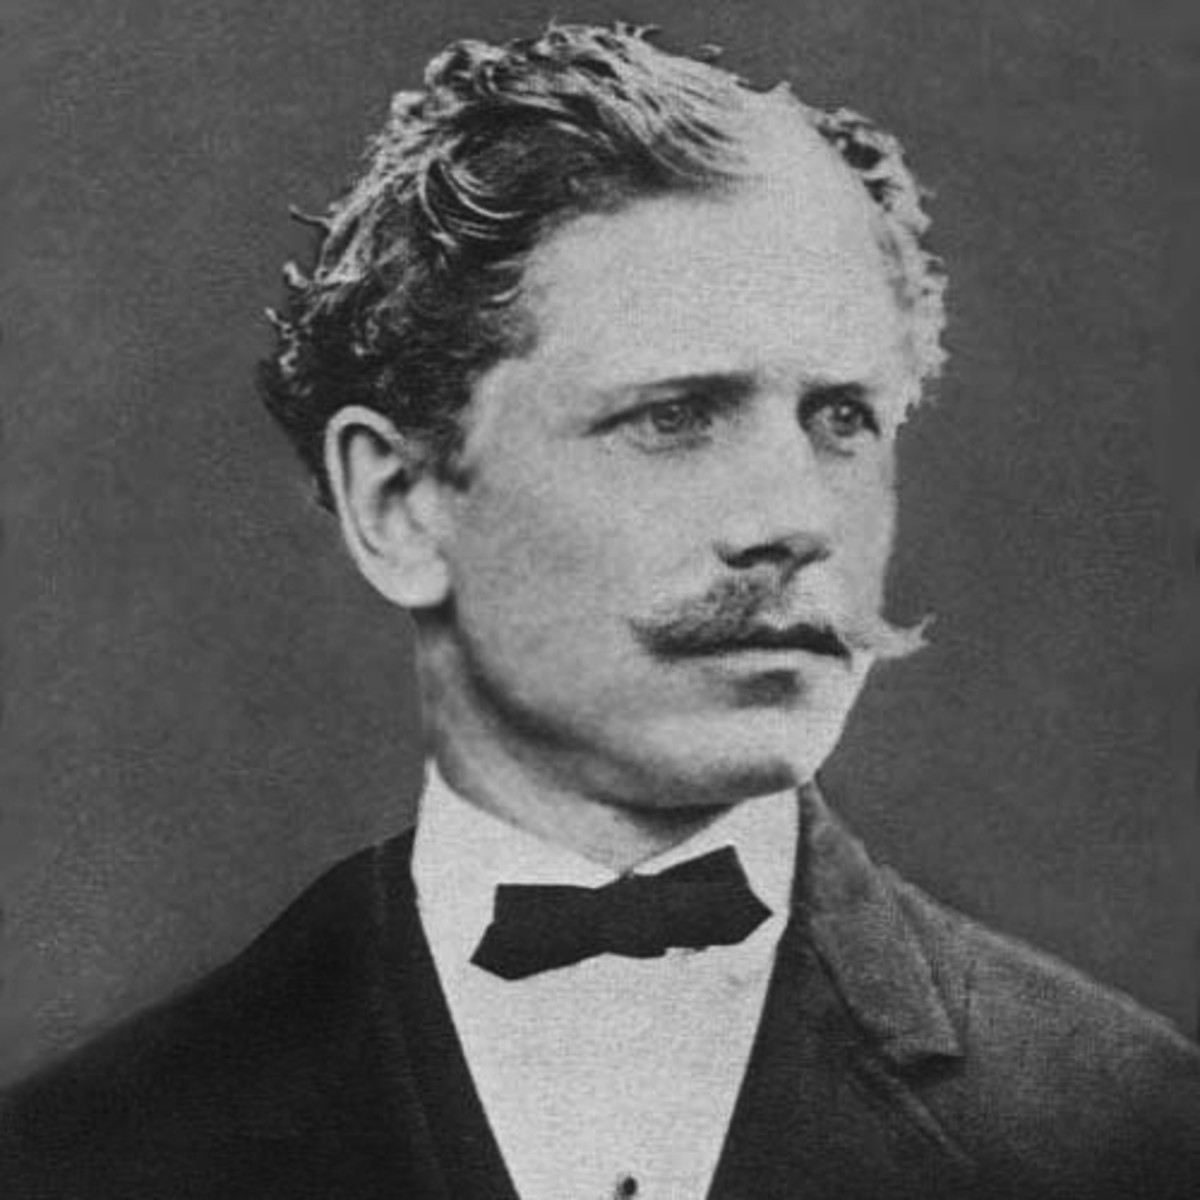 Winston Groom's El Paso attempts to explain the unsolved fate of author Ambrose Bierce, who disappeared in Mexico during that country's revolution.